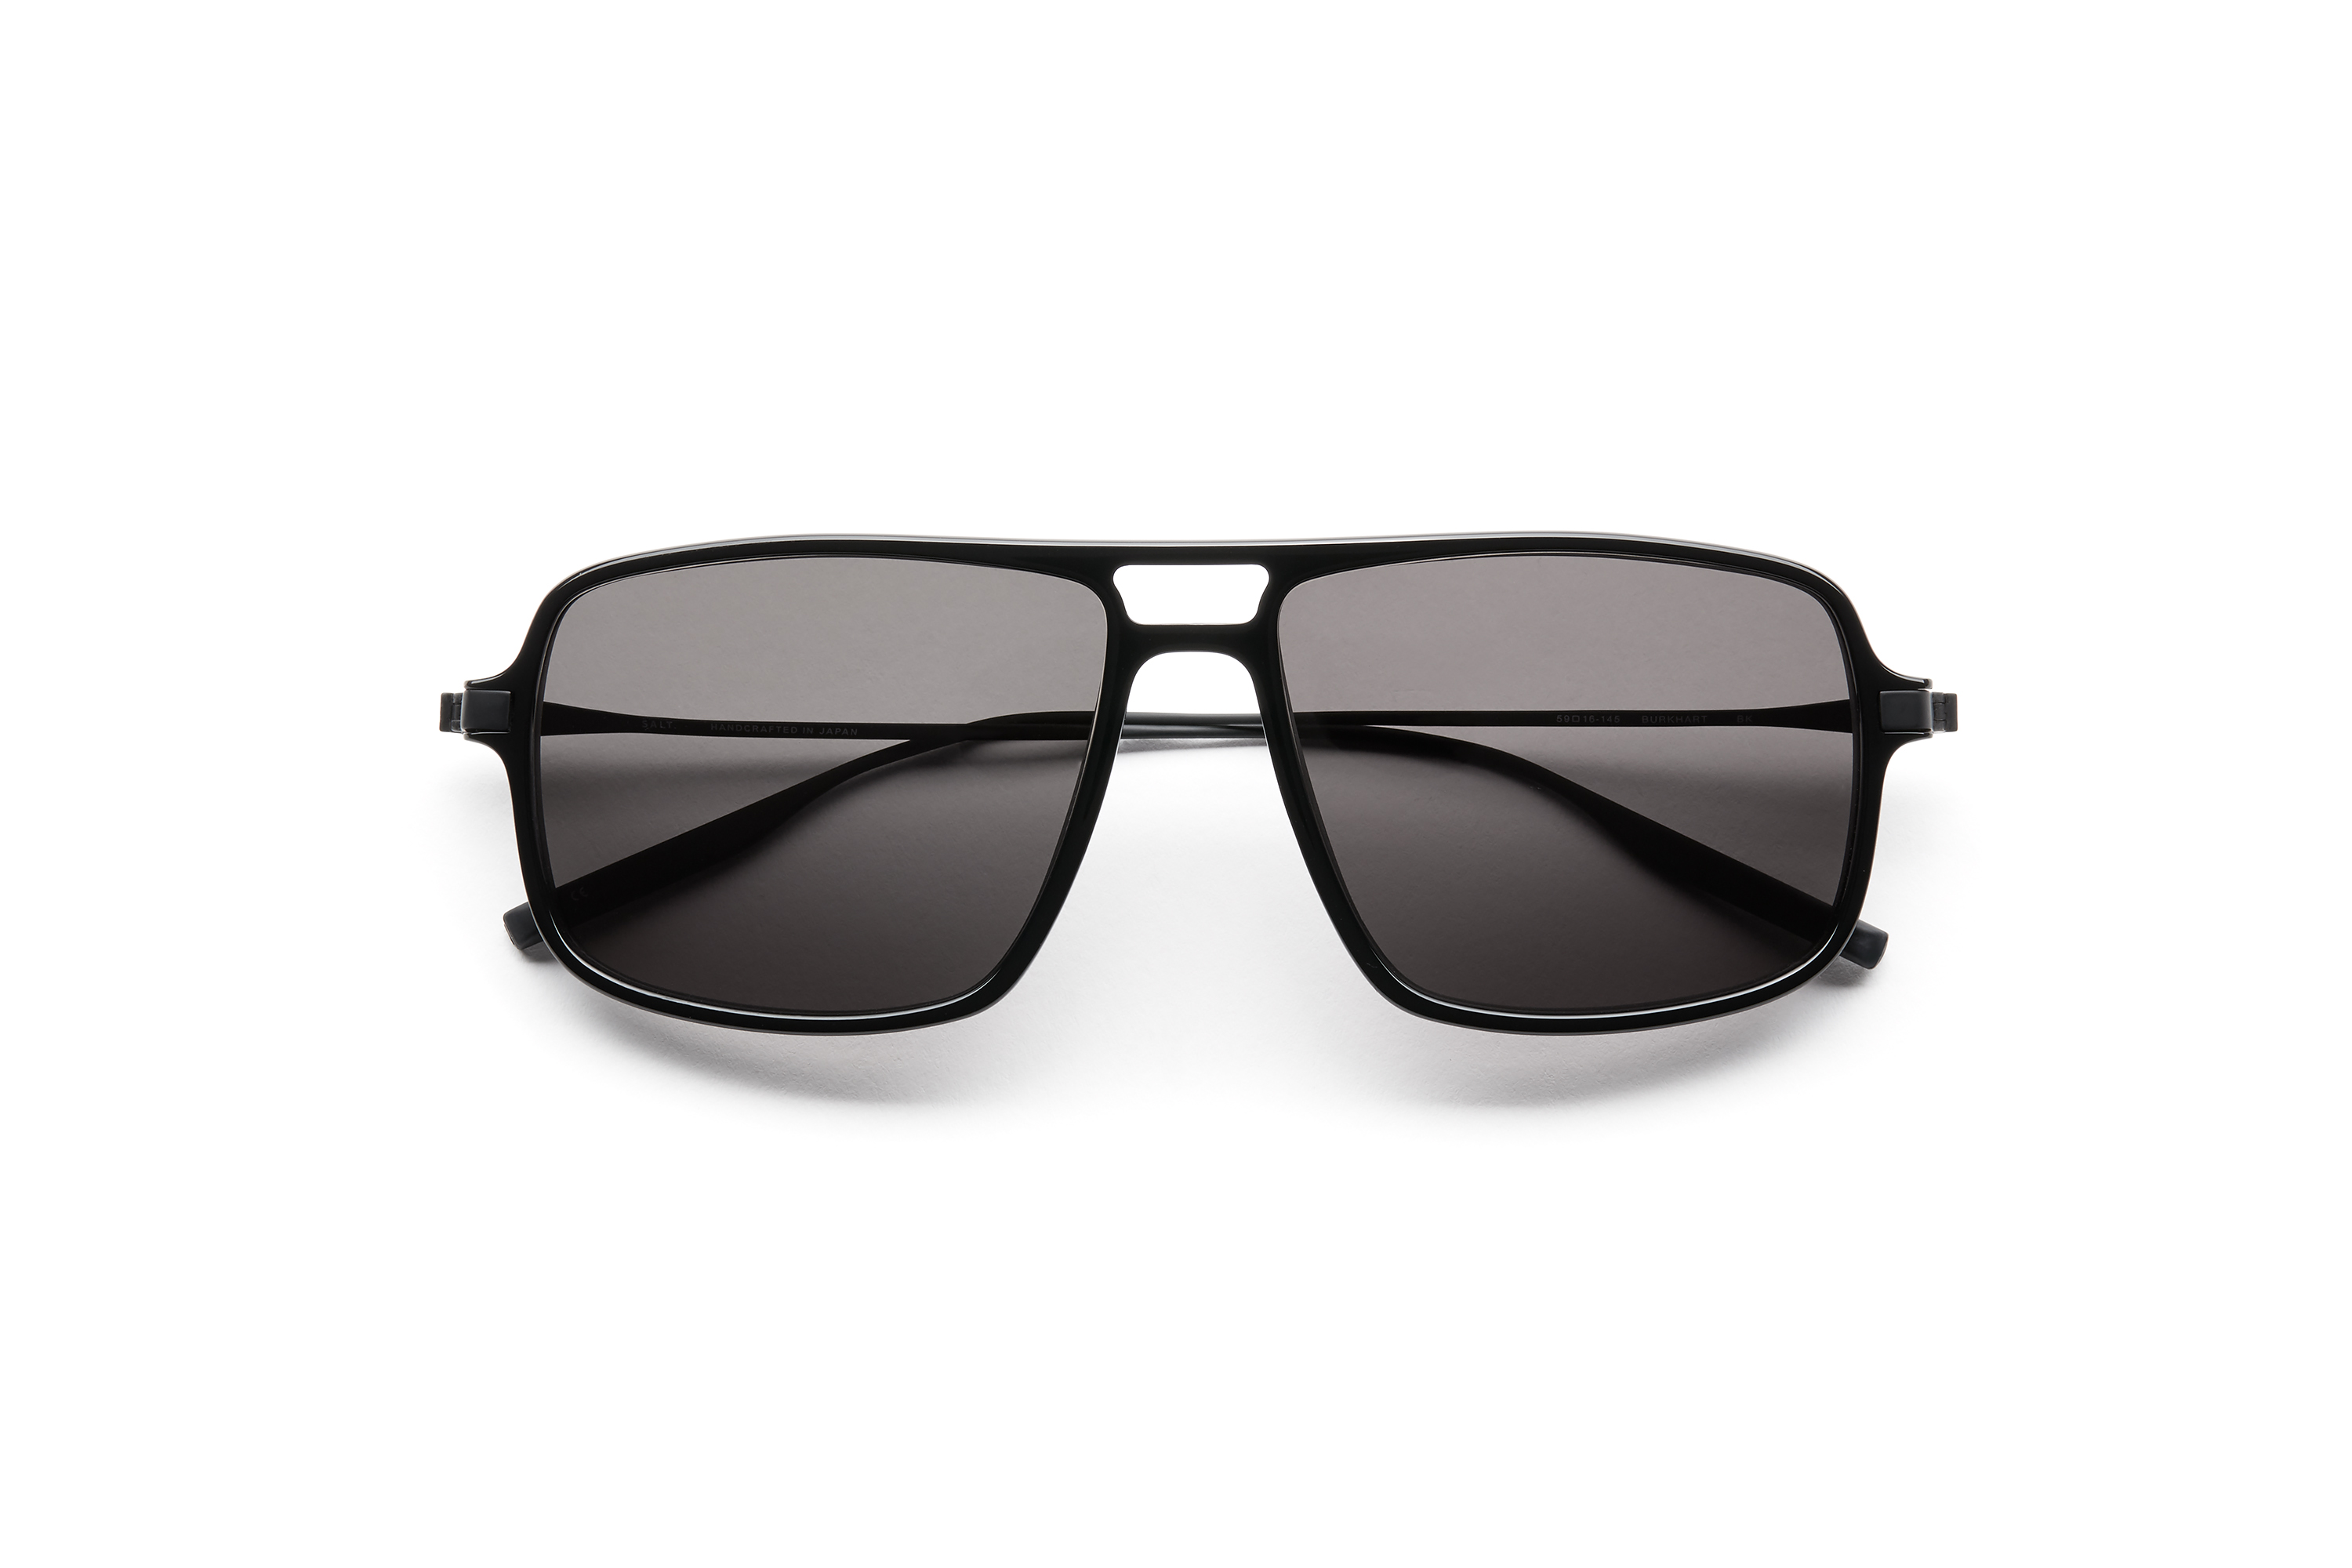 SALT. | frame: BURKHART | color: BLACK